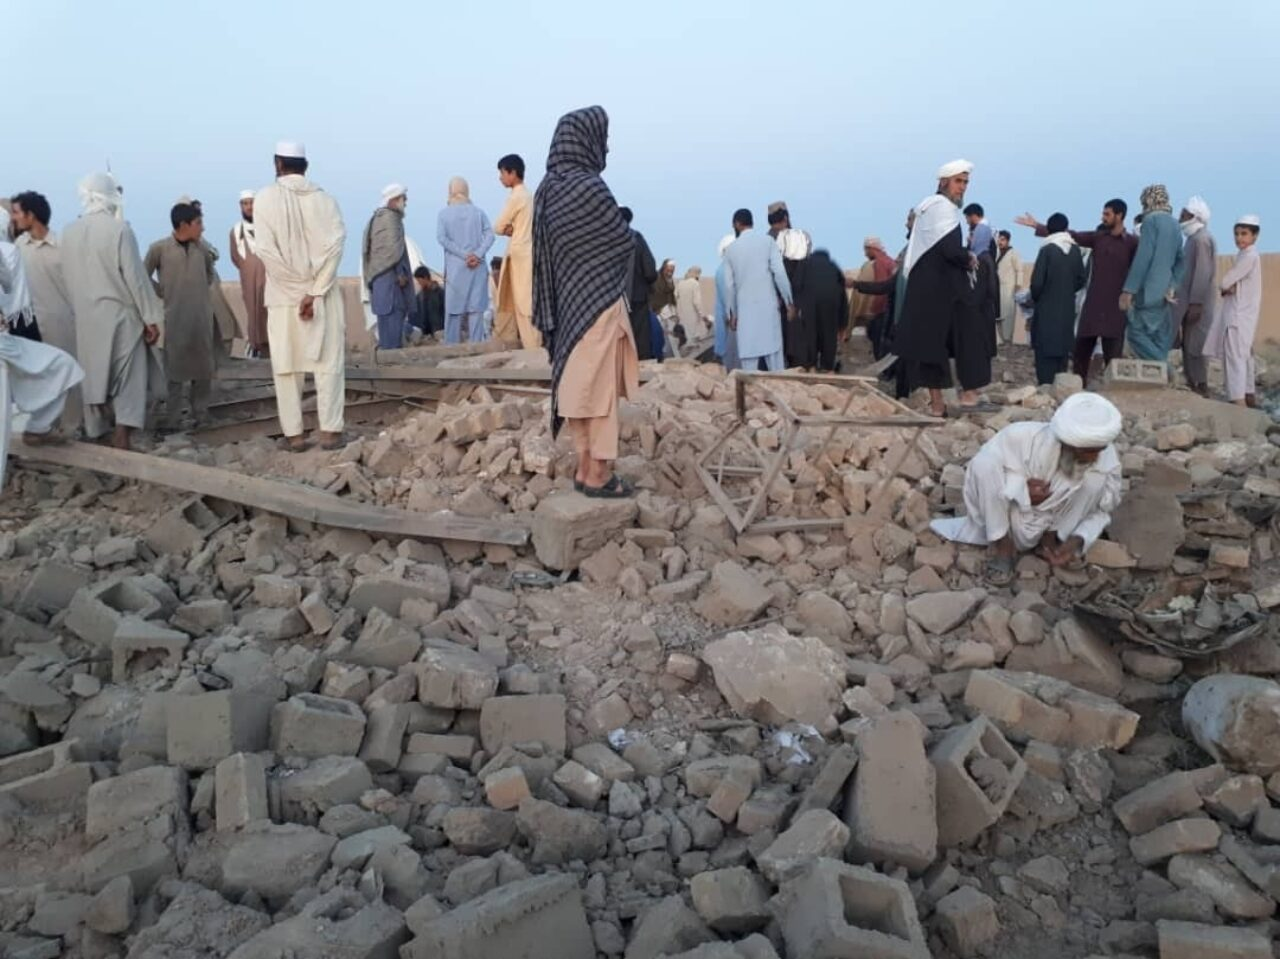 People stand on a levelled building at daybreak